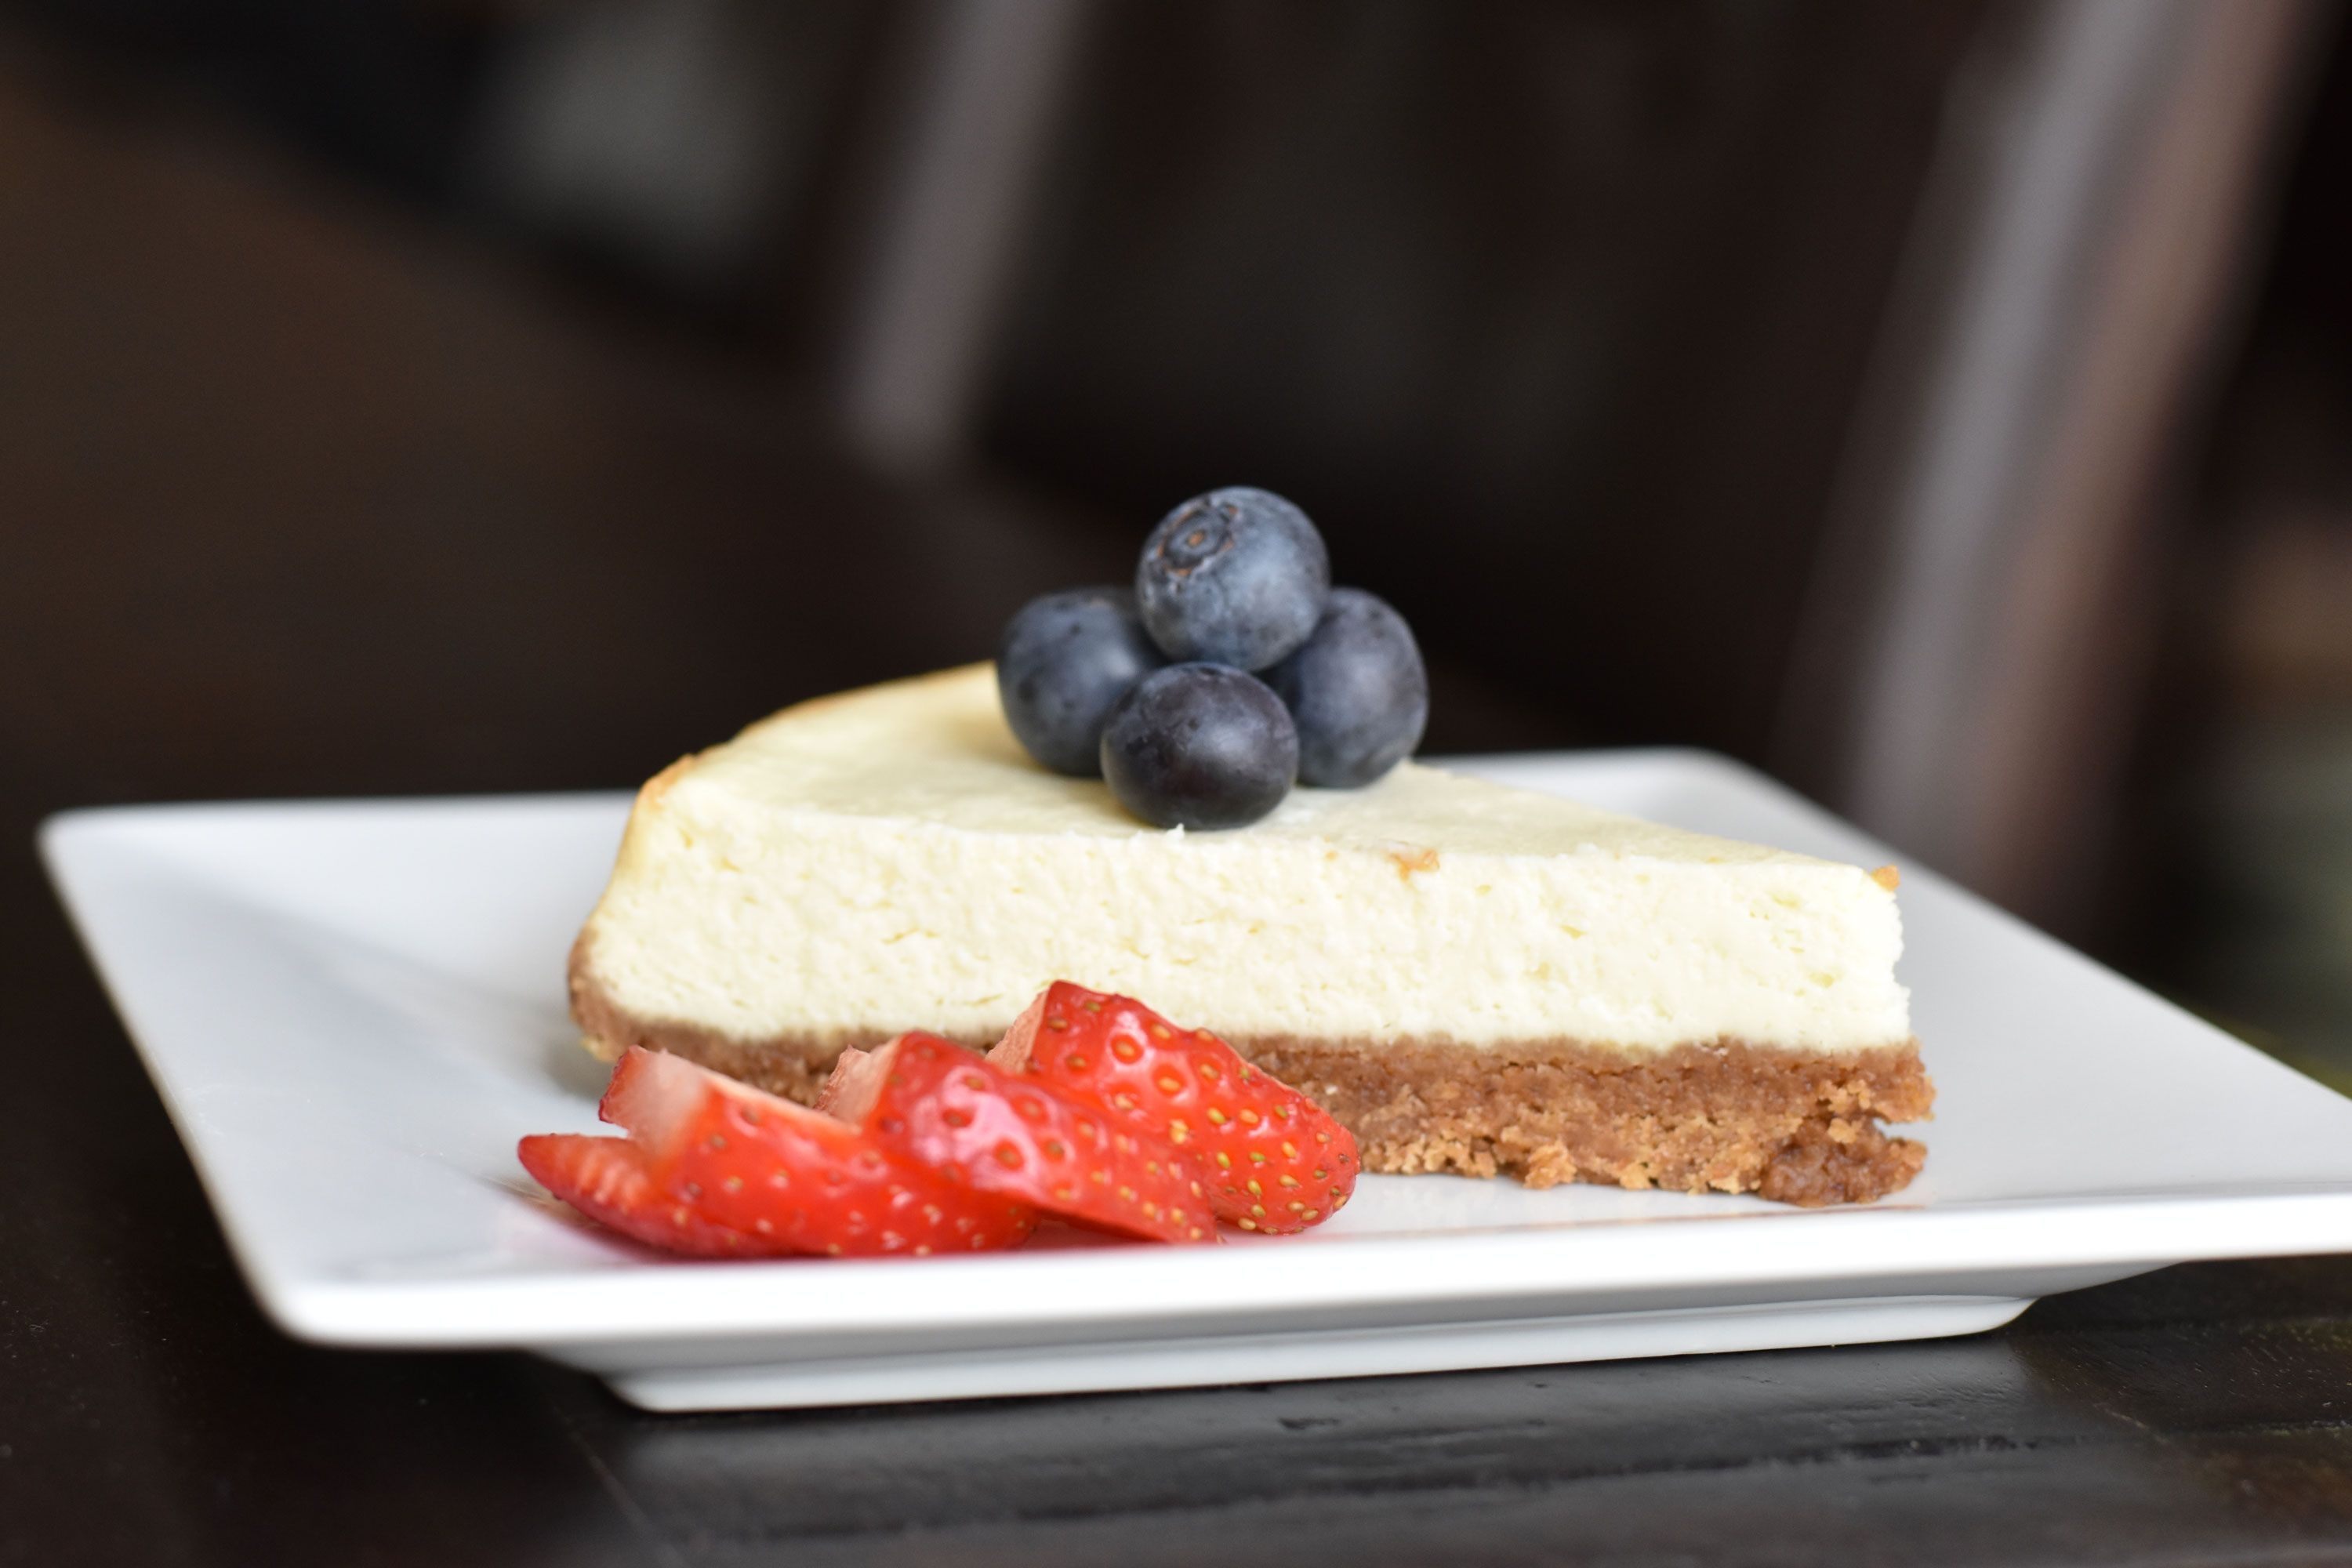 """Skinny Cheesecake- Sweet and crisp crust with a rich and smooth cream cheese filling- slice of decadence! In this 'Skinny"""" version, I've halved the calories- enjoy!"""